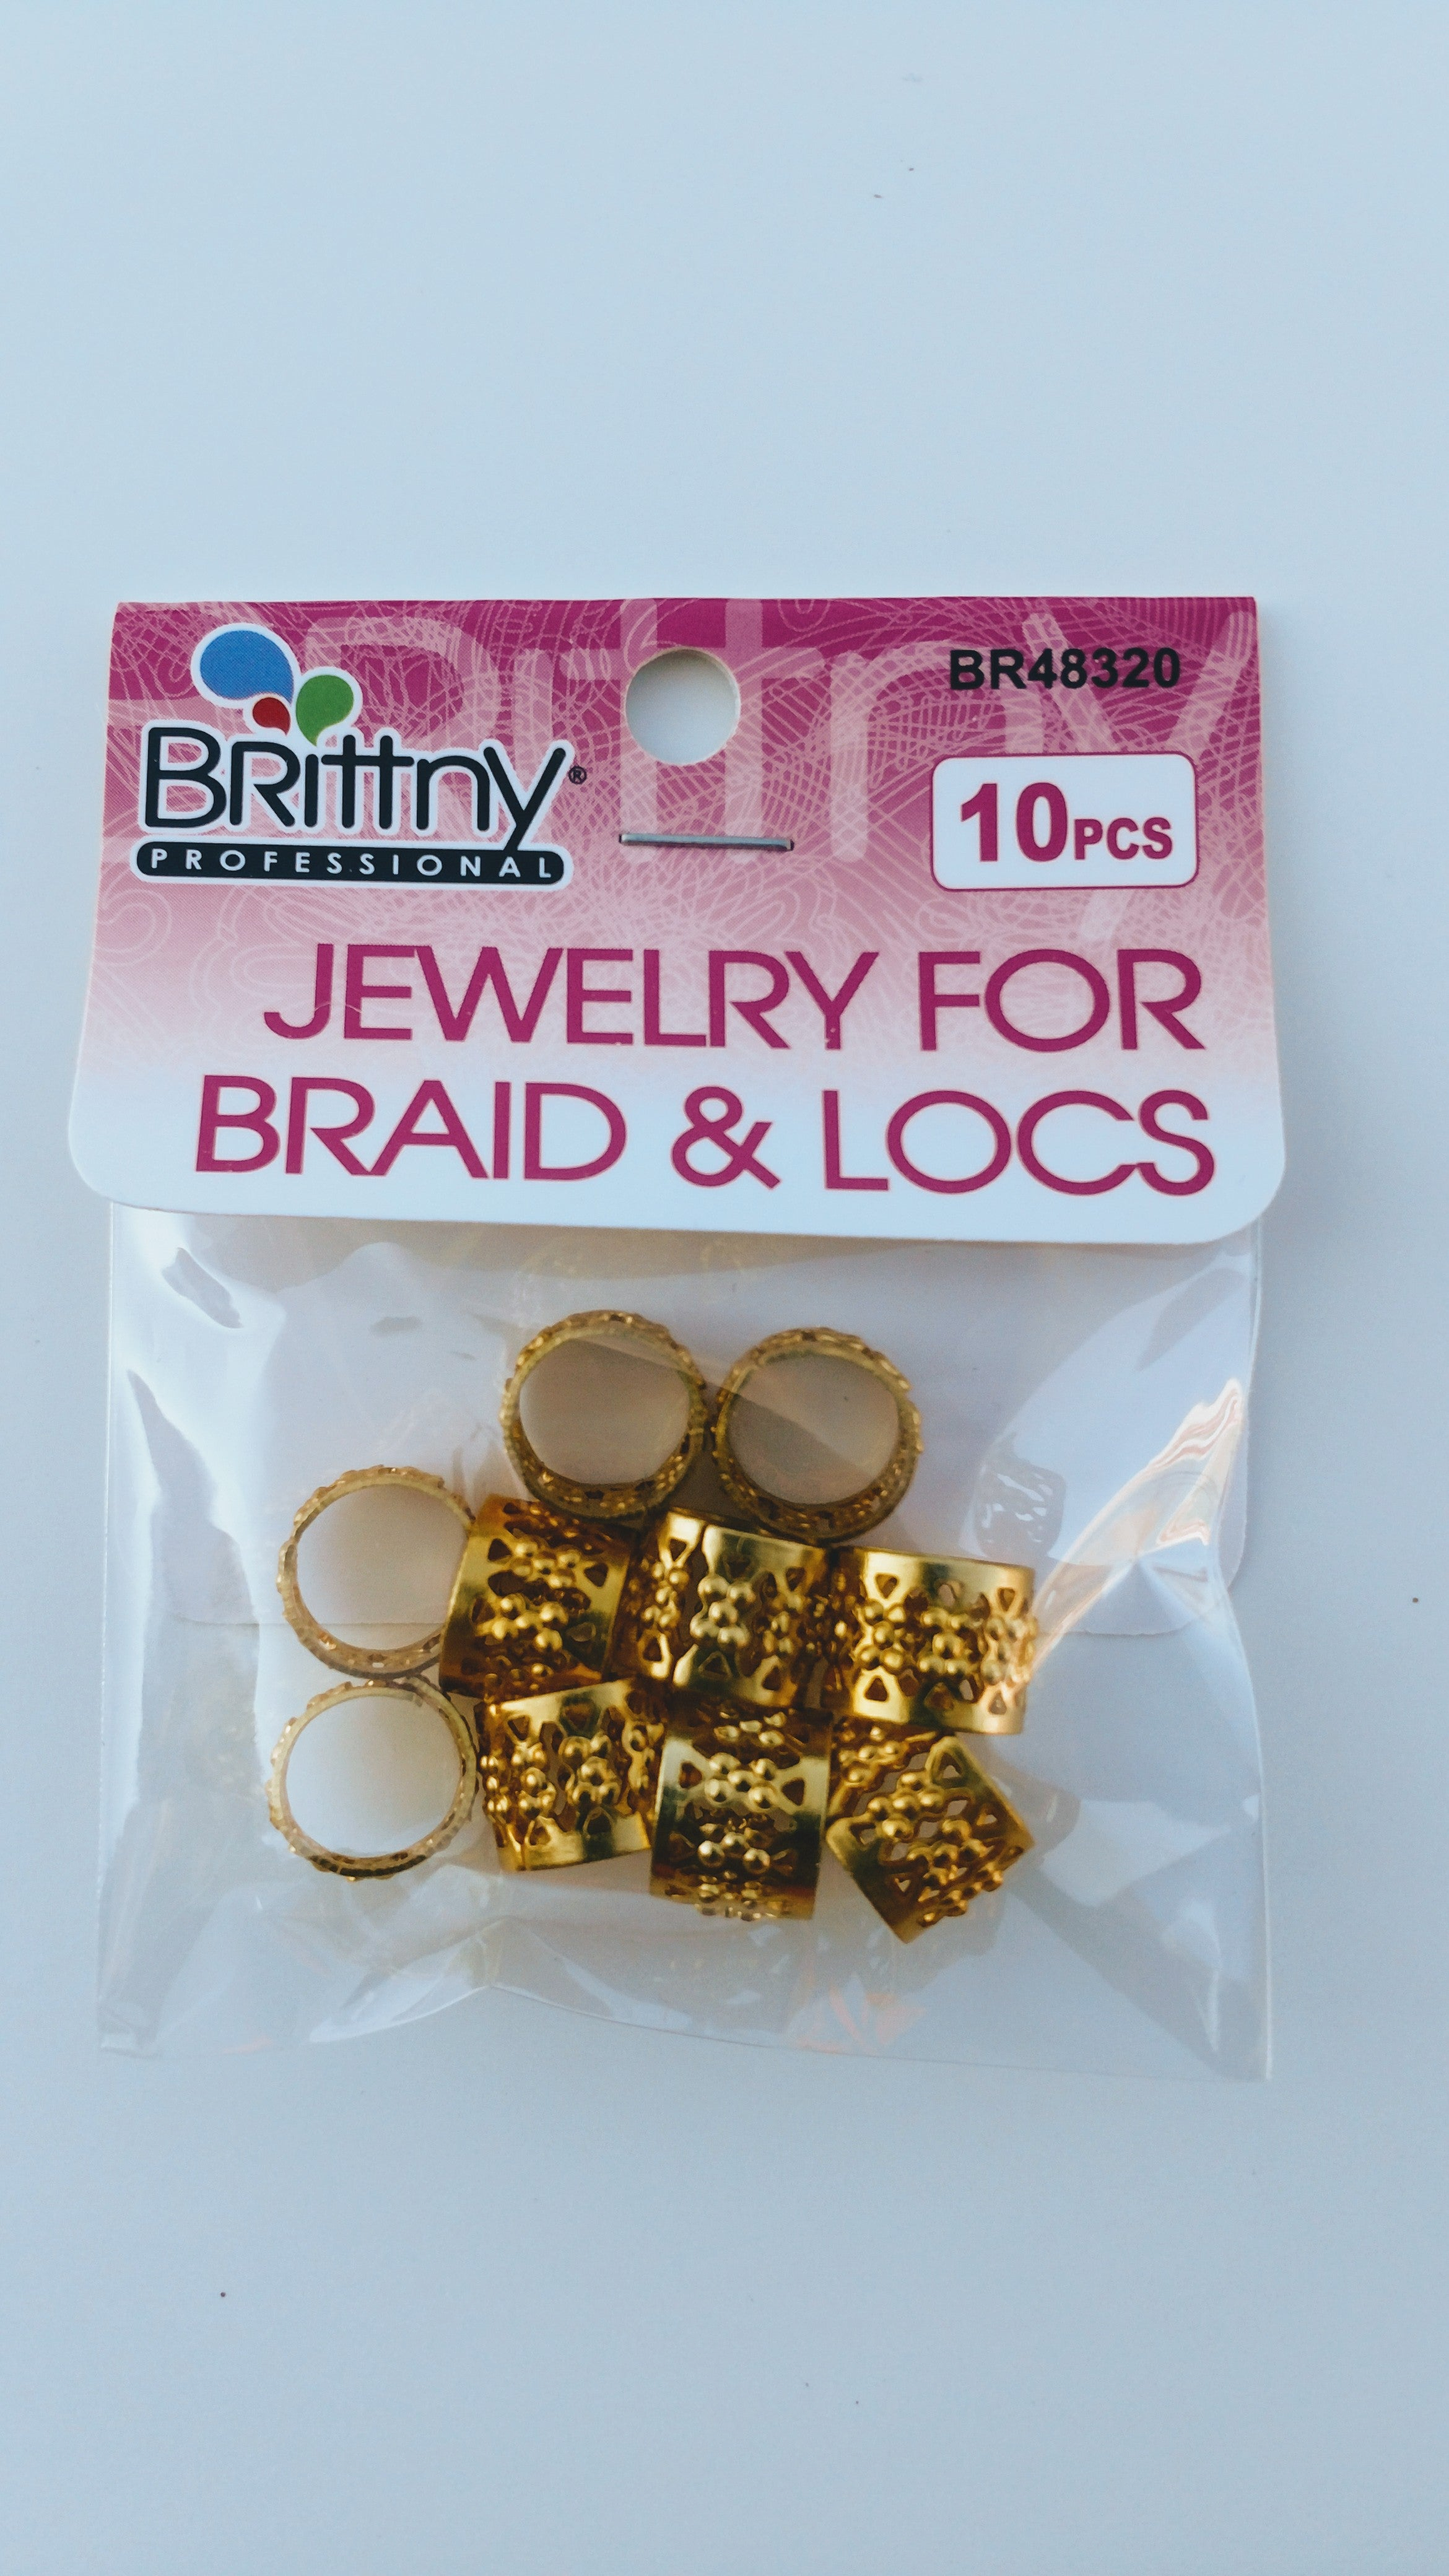 Brittny Jewelry for Braid & Locs - Beauty Bar & Supply